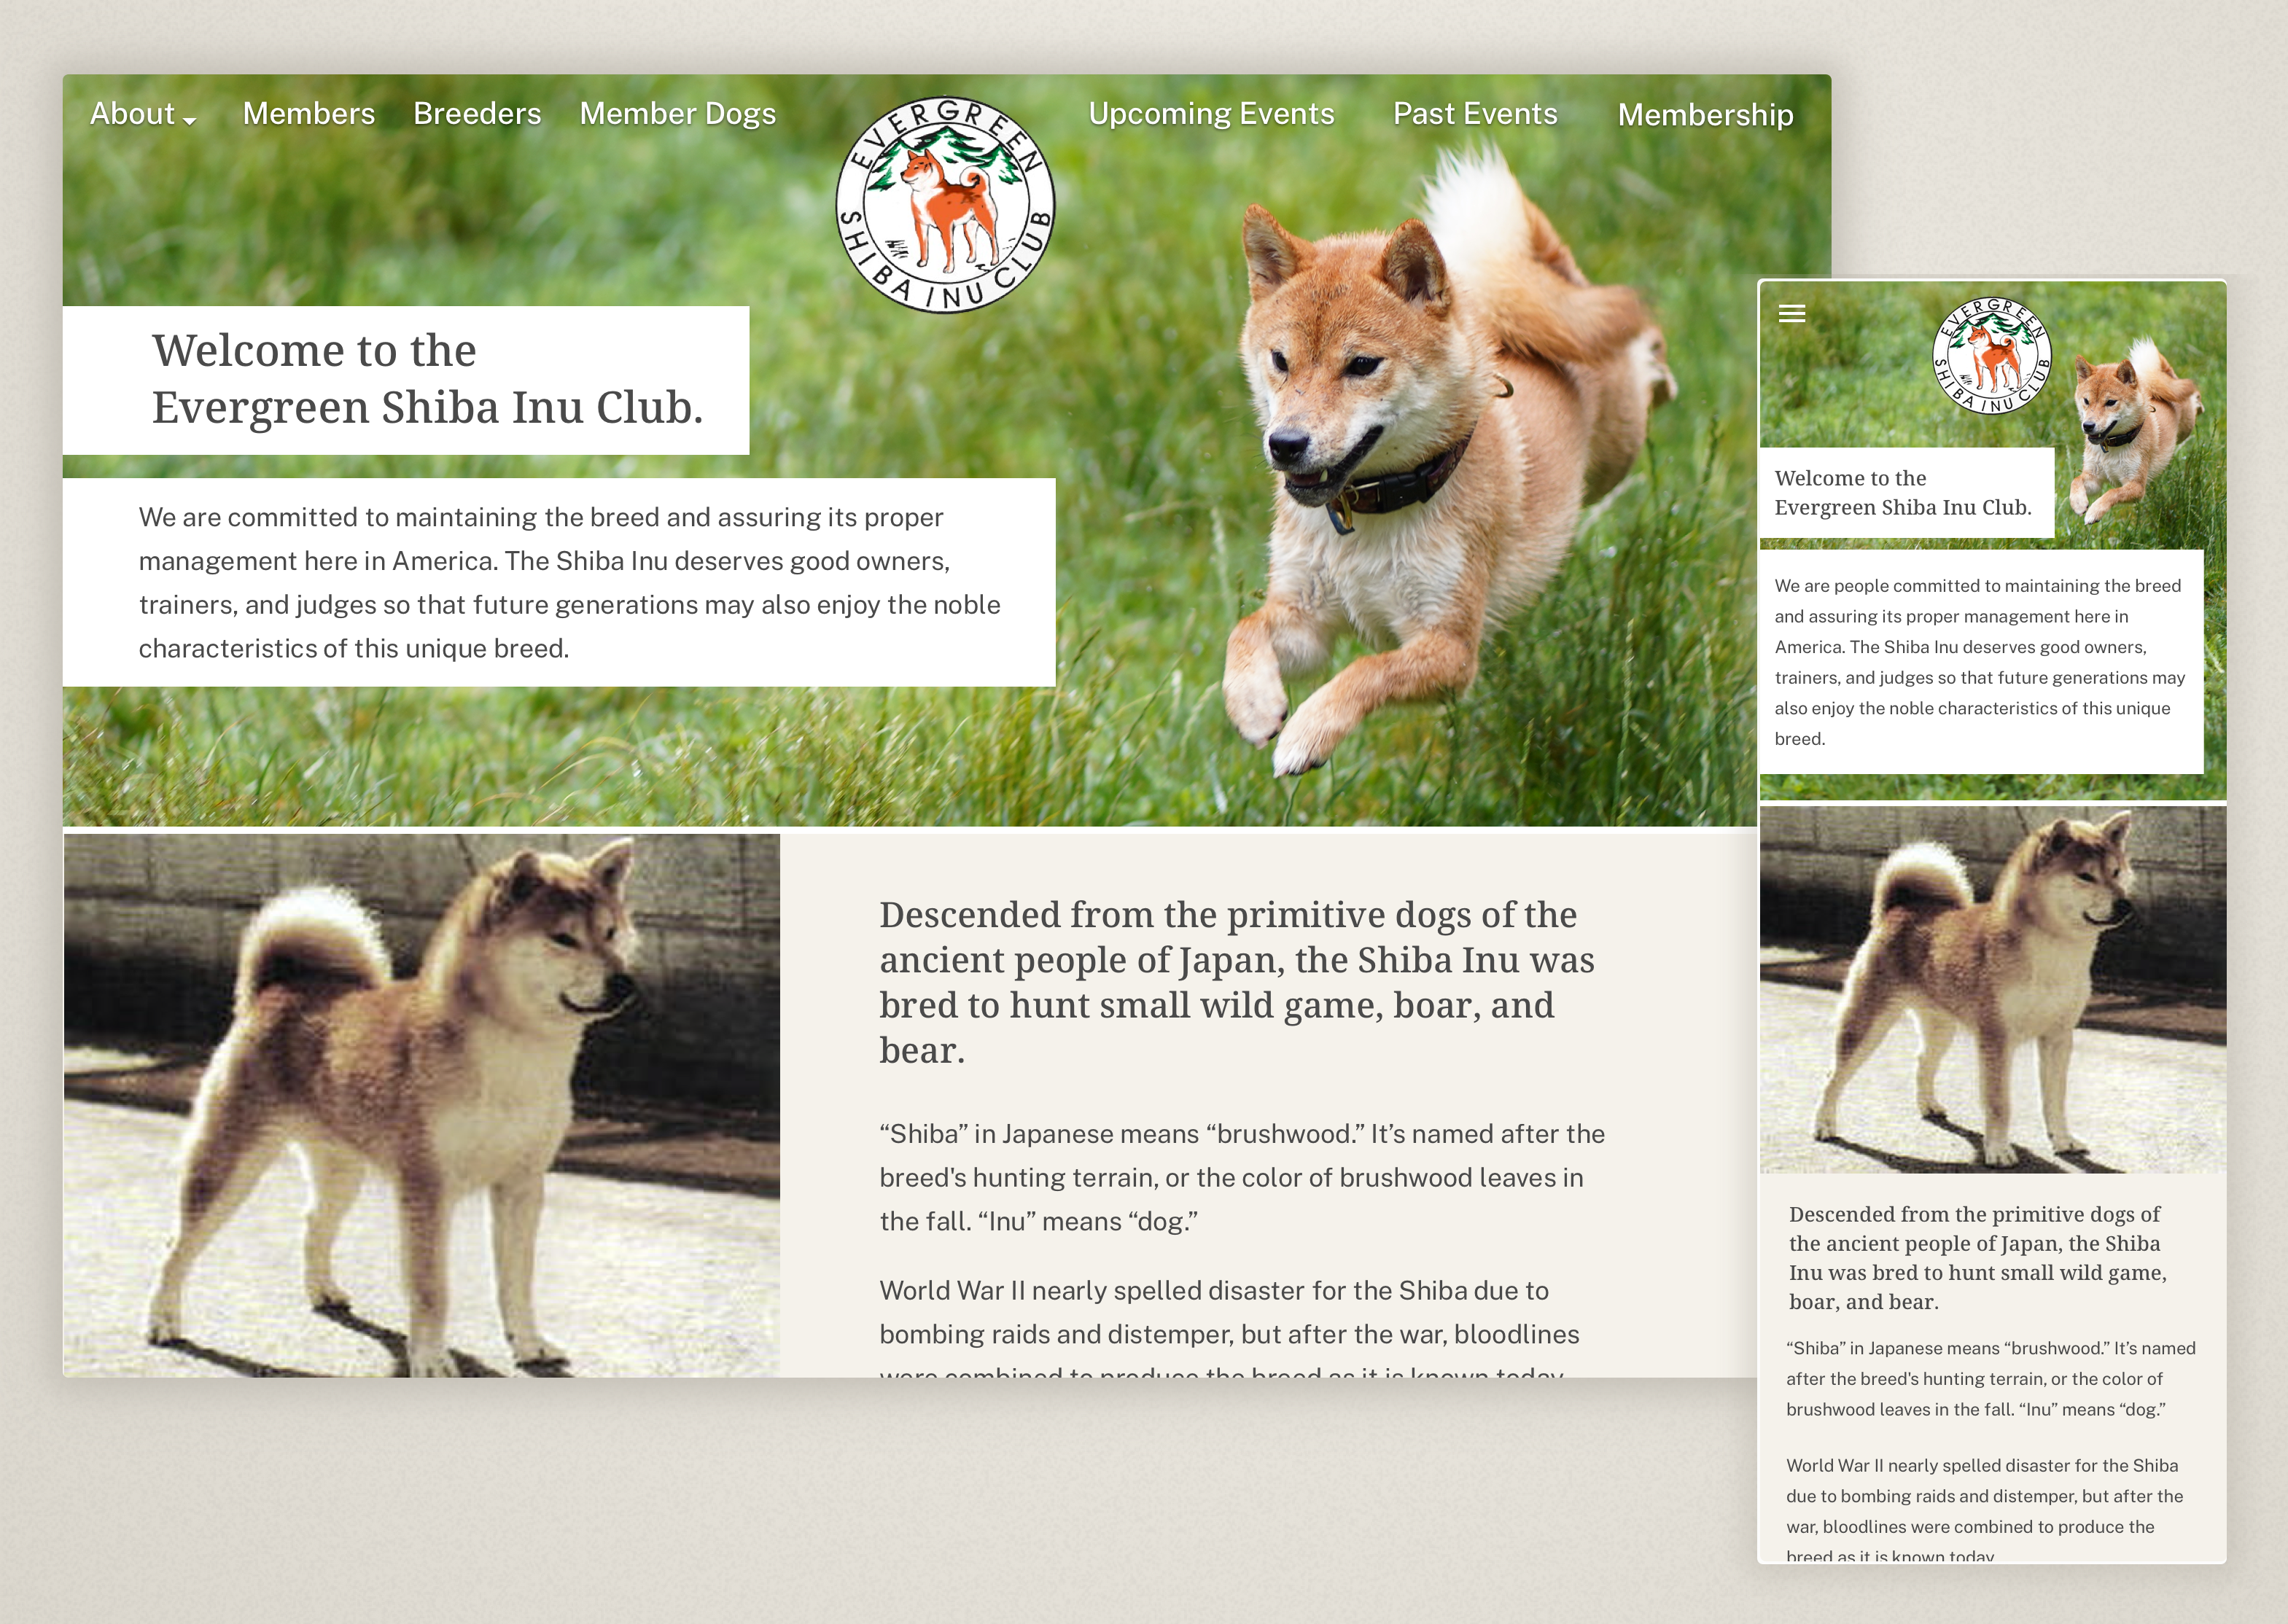 Desktop and mobile screenshots of a website for the Evergreen Shiba Inu Club.